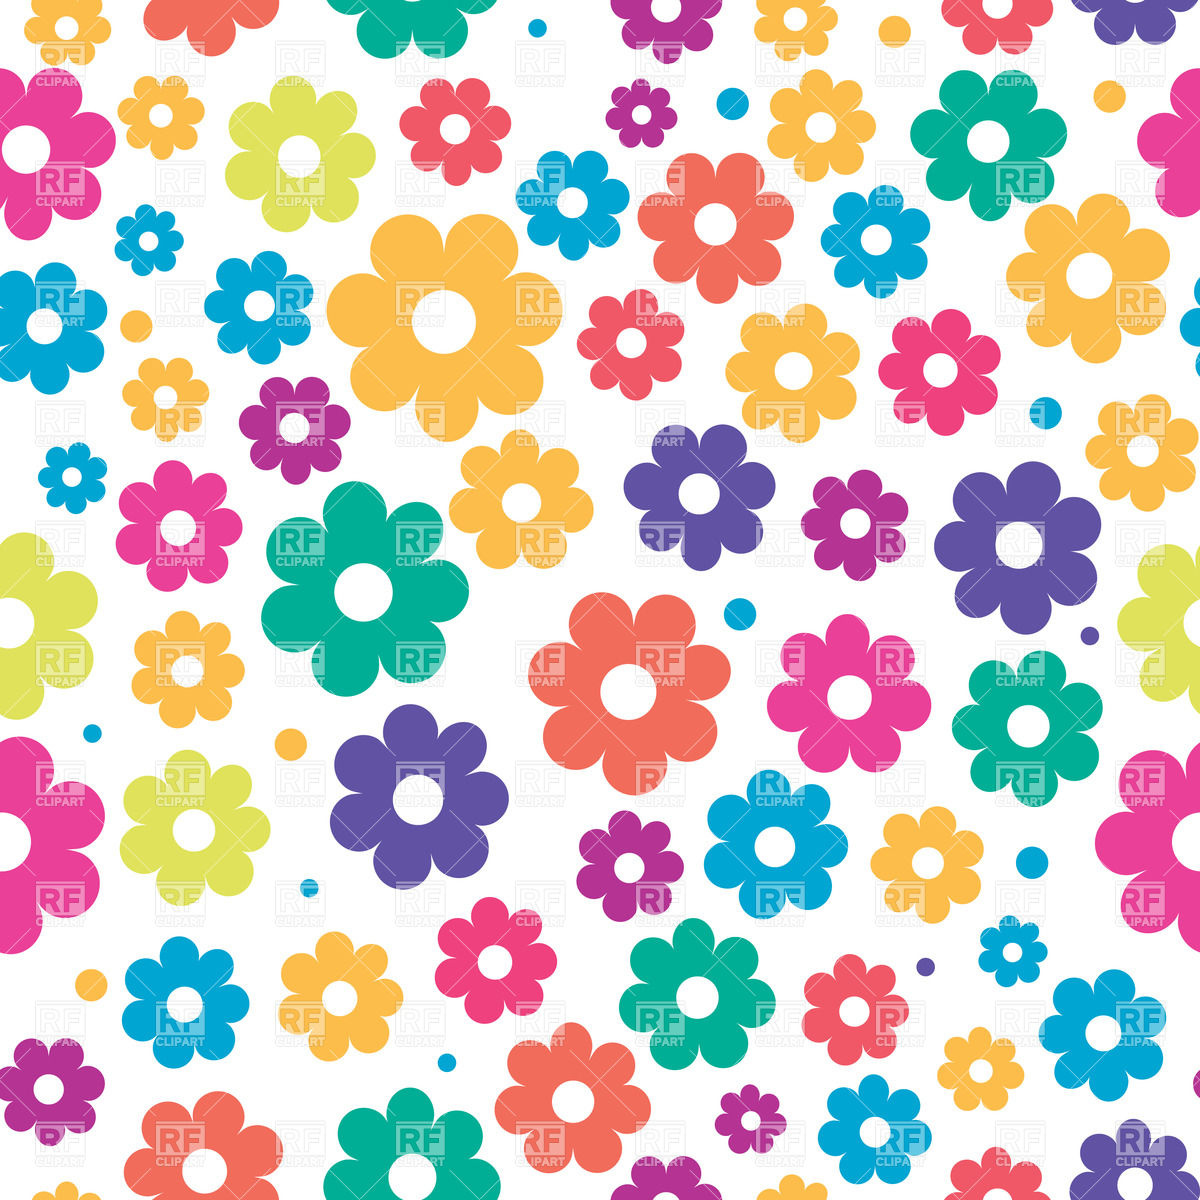 Cute Floral Seamless Background 24070 Download Royalty Free Vector